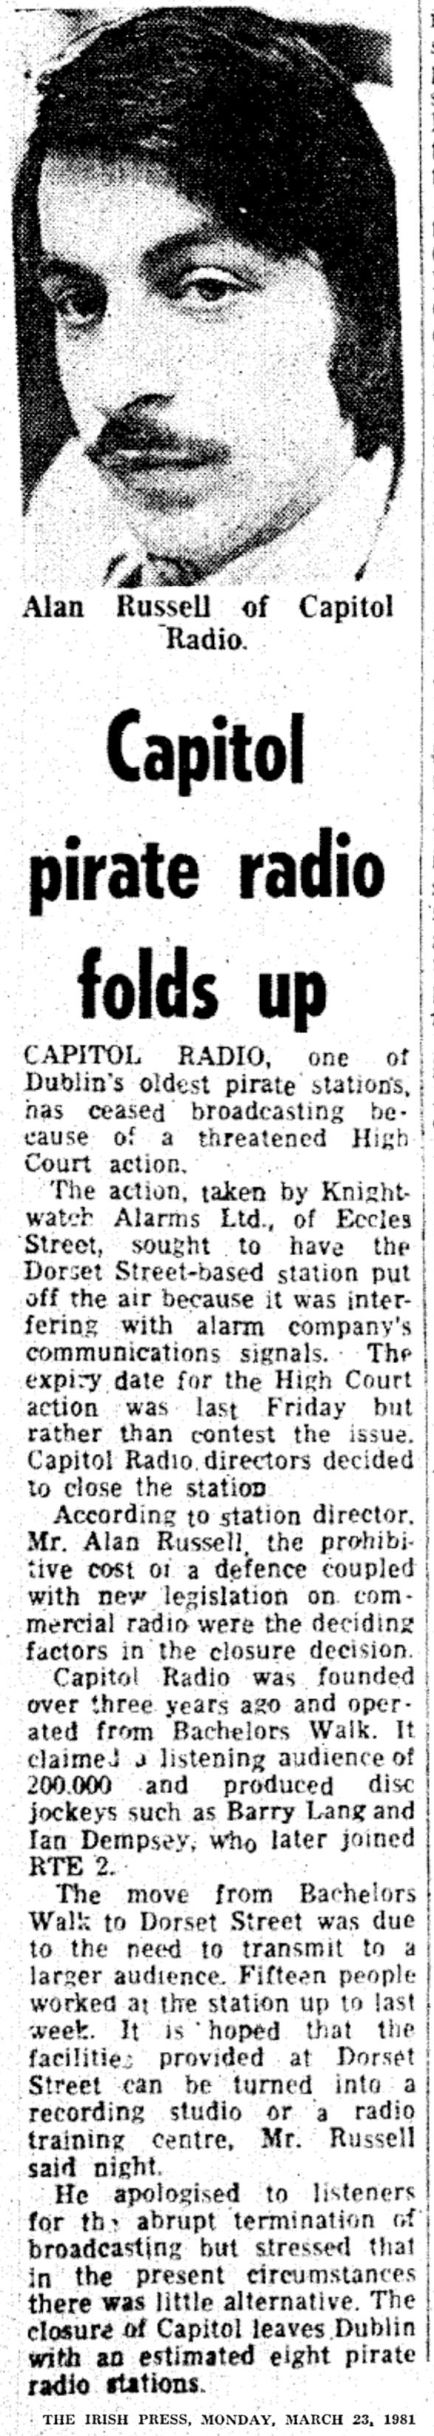 Capitol pirate radio folds up was a newspaper headline from the Irish Press dated March 23rd 1981